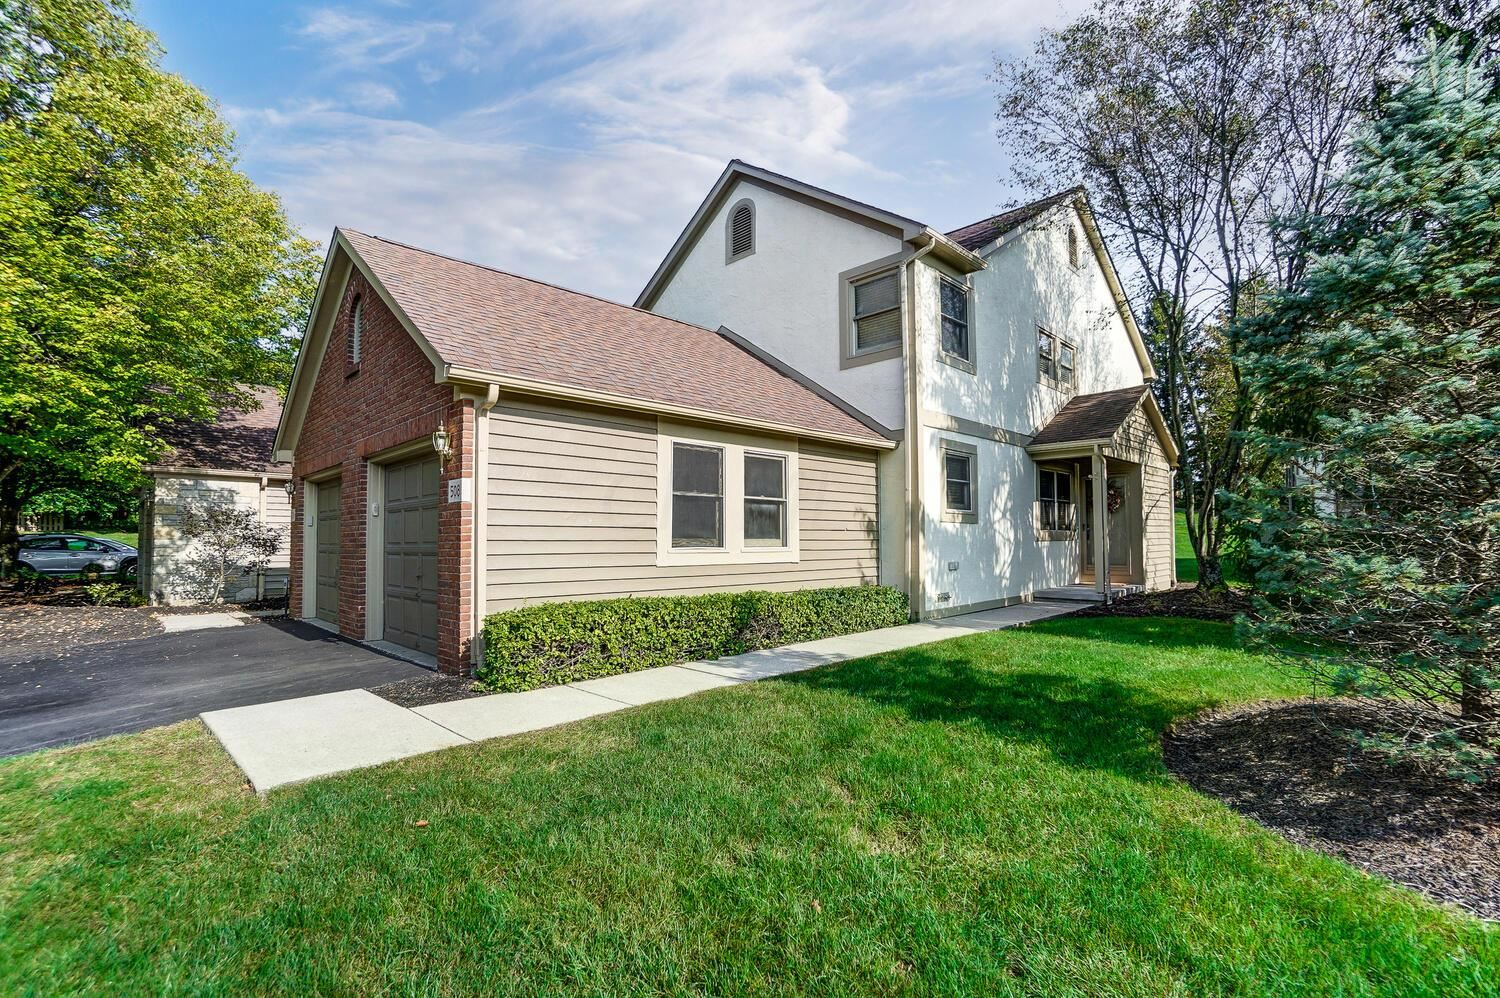 Photo of 508 Spring Brook W #7-508, Westerville, OH 43081 (MLS # 221039665)